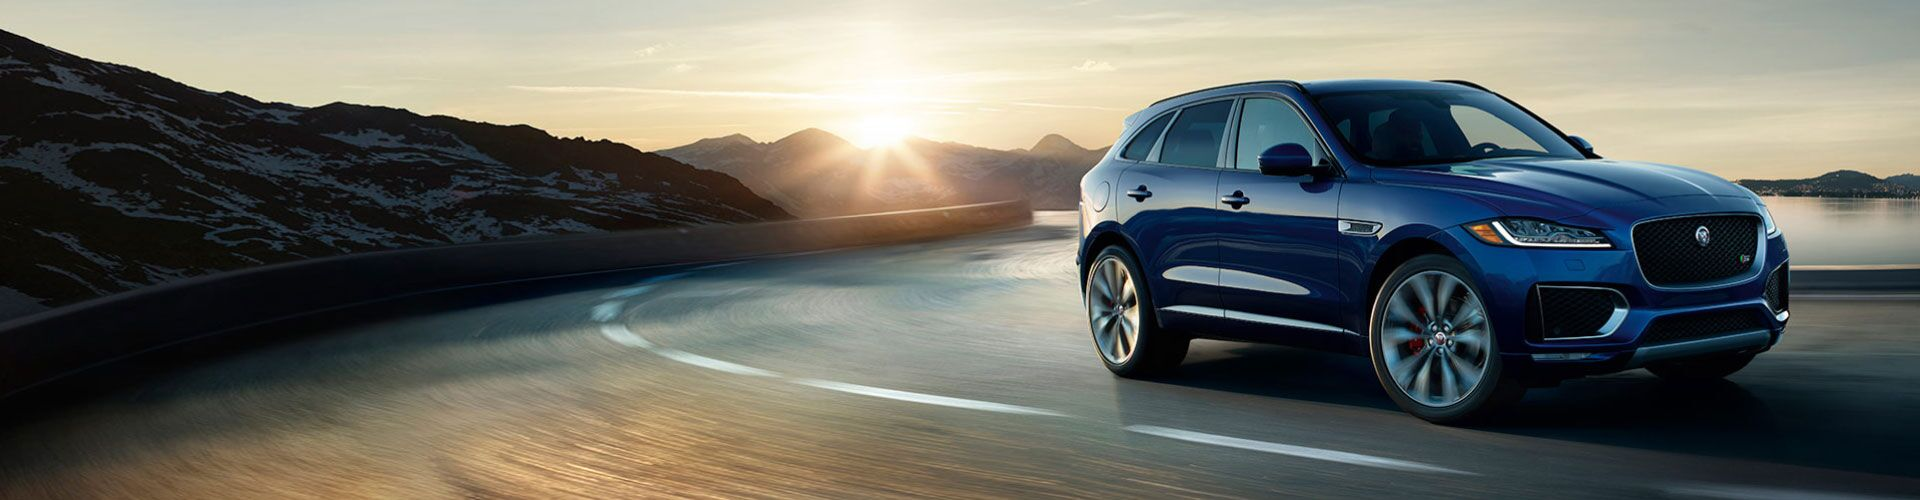 2019 F-PACE Lease Offer